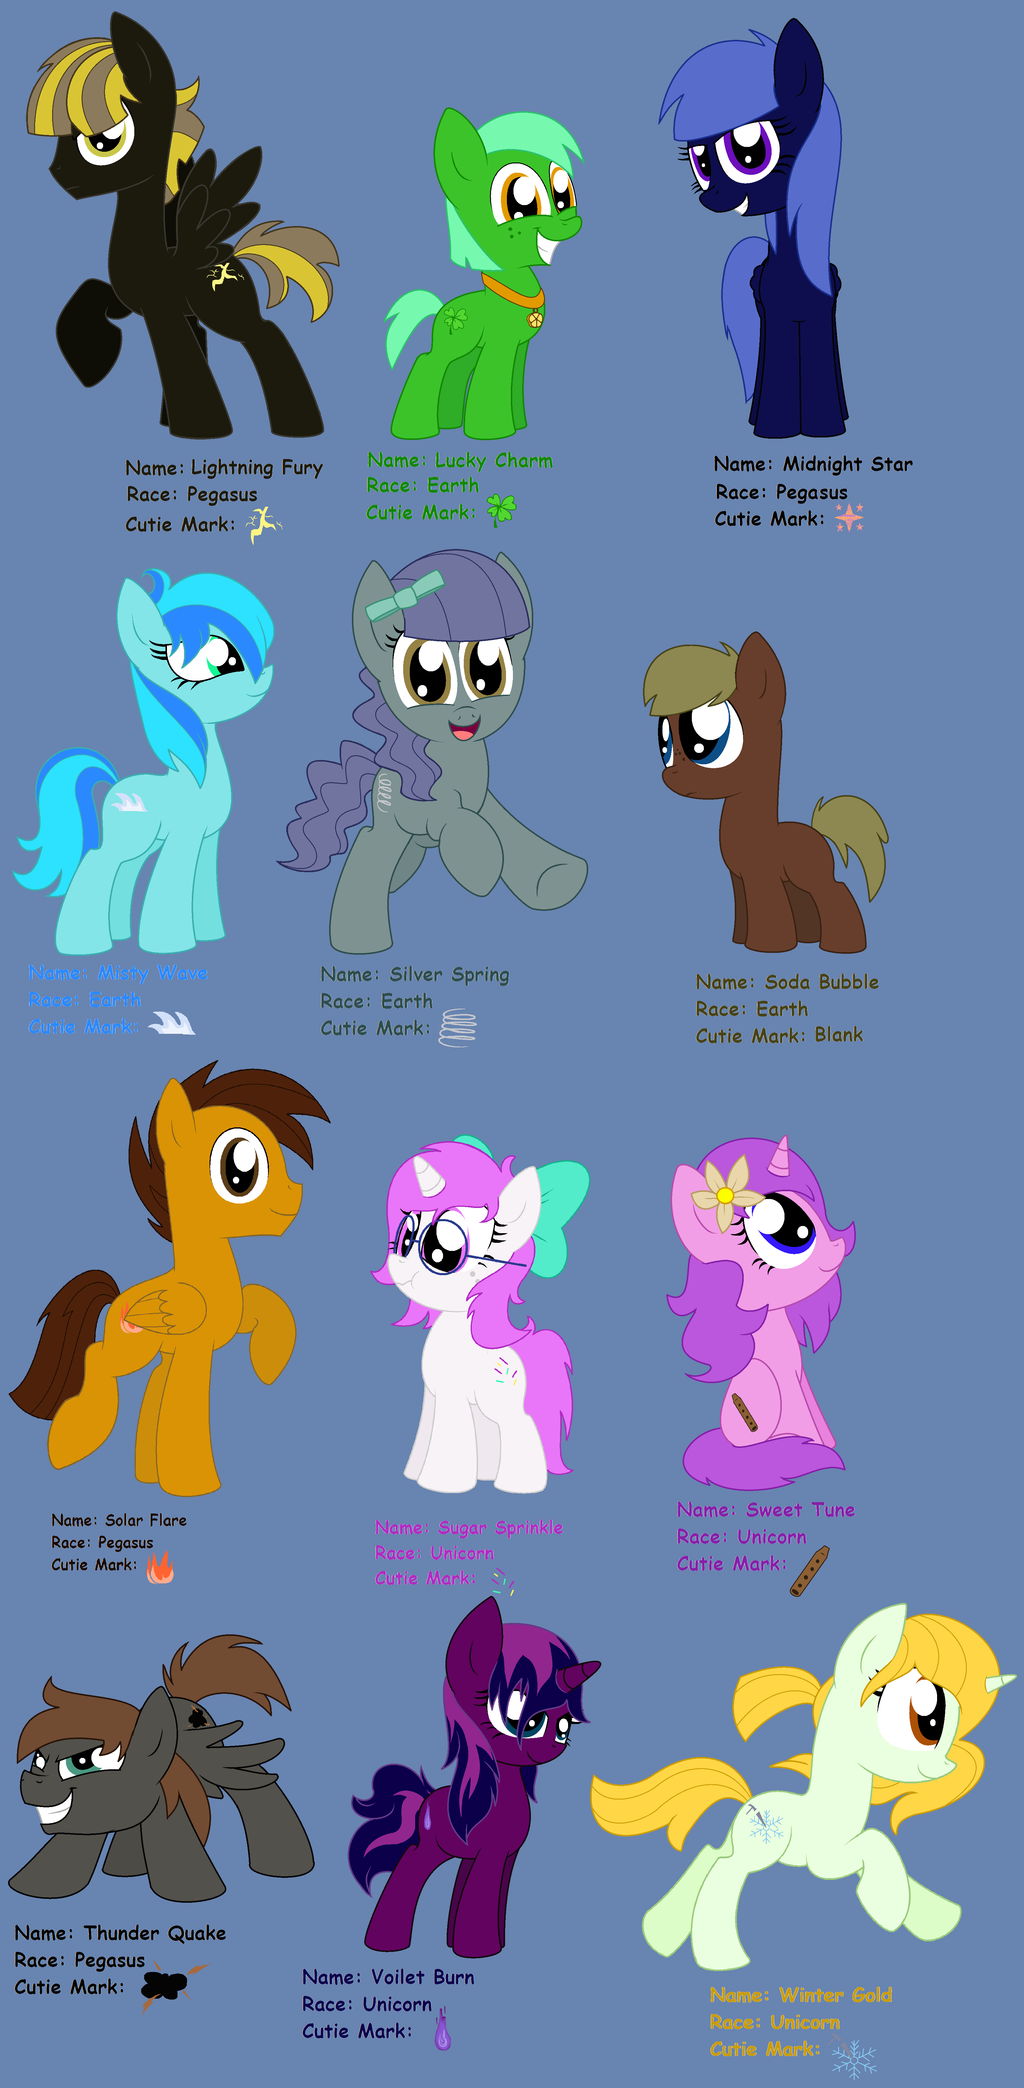 12 new MLPFIM OC's by Pupster0071 on DeviantArt.